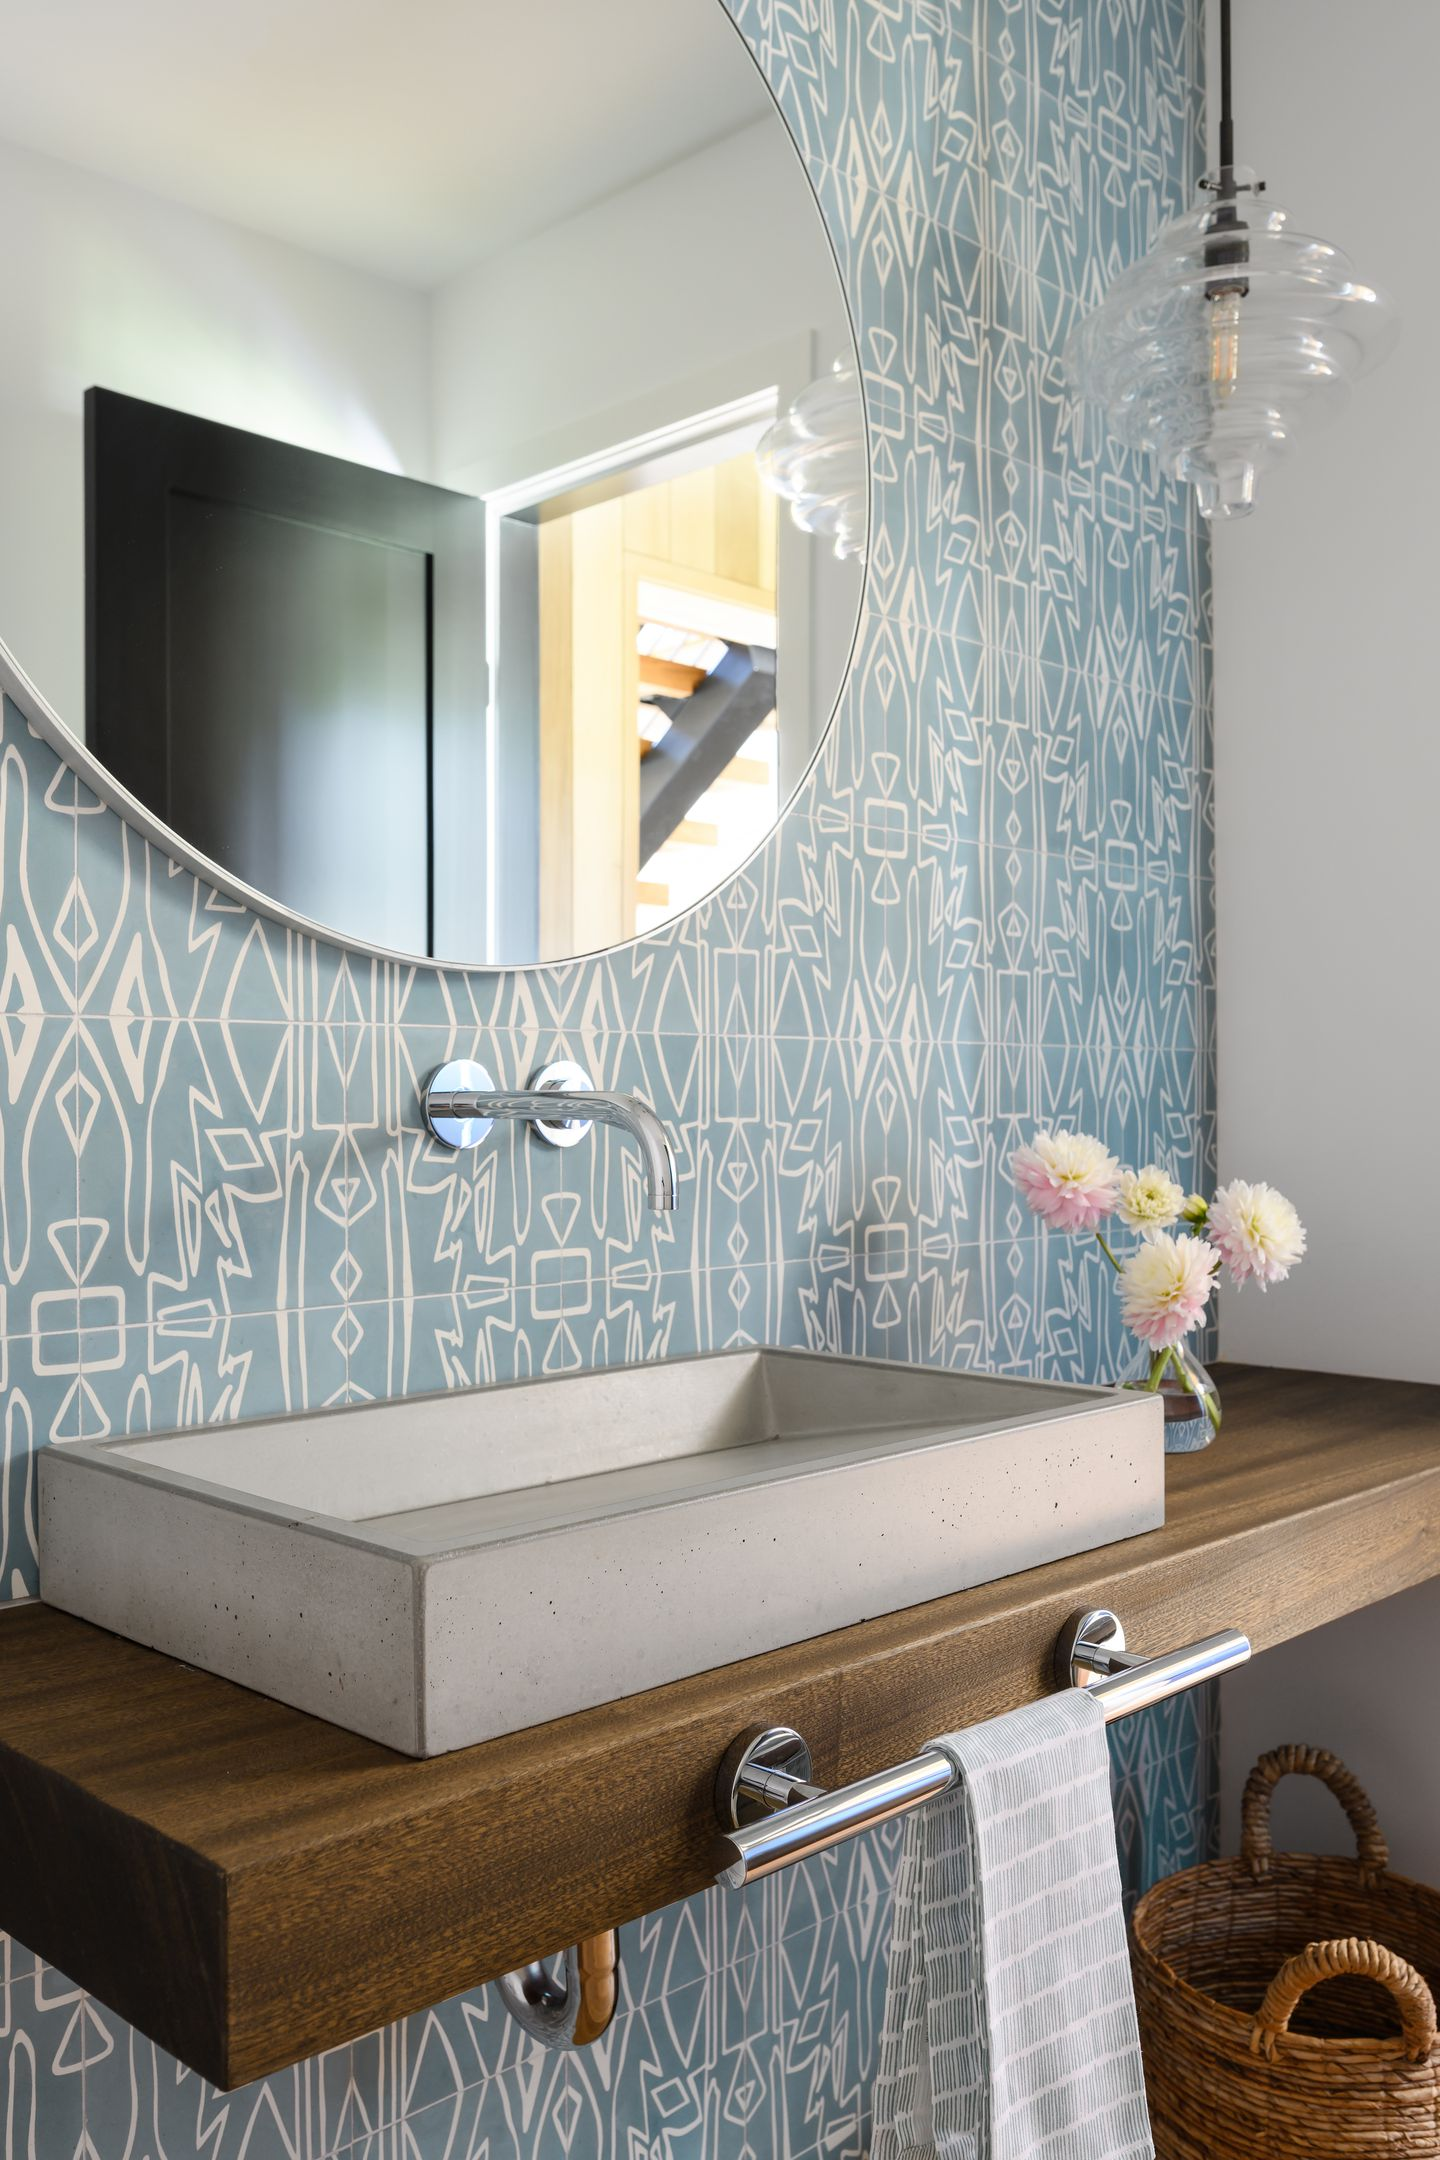 Cement tiles by Eskayel for Cle bring color to a powder room; the pendants by Kelly Wearstler for Visual Comfort are from Newburyport Lighting; and the concrete sink ties to the lower level floor.